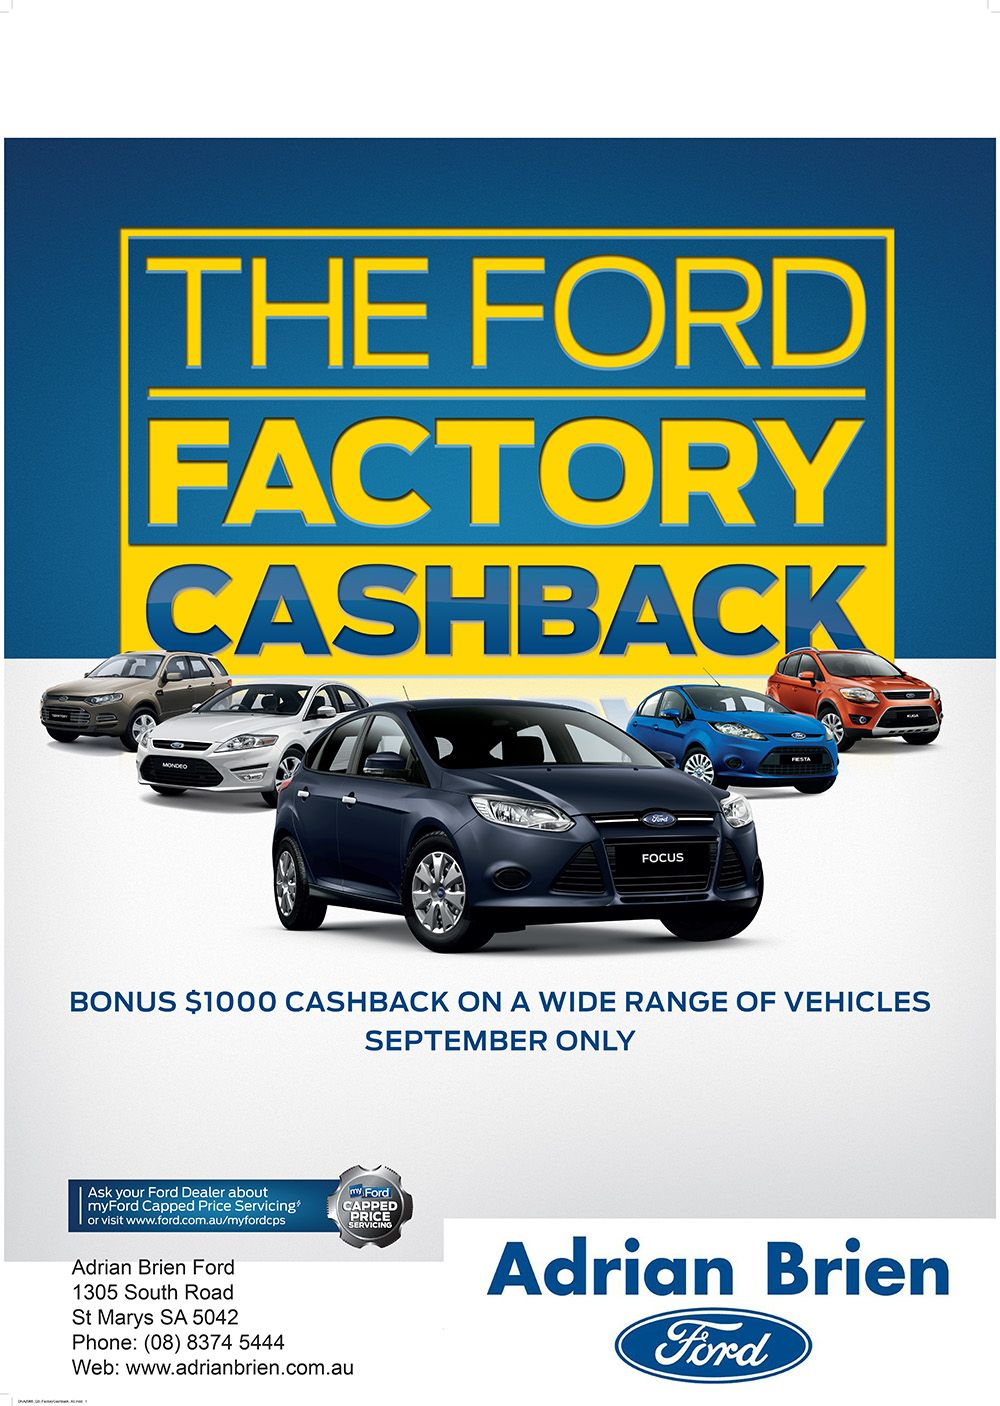 The Ford Factory Cashback Bonus 1 000 Cash Back On A Wide Range